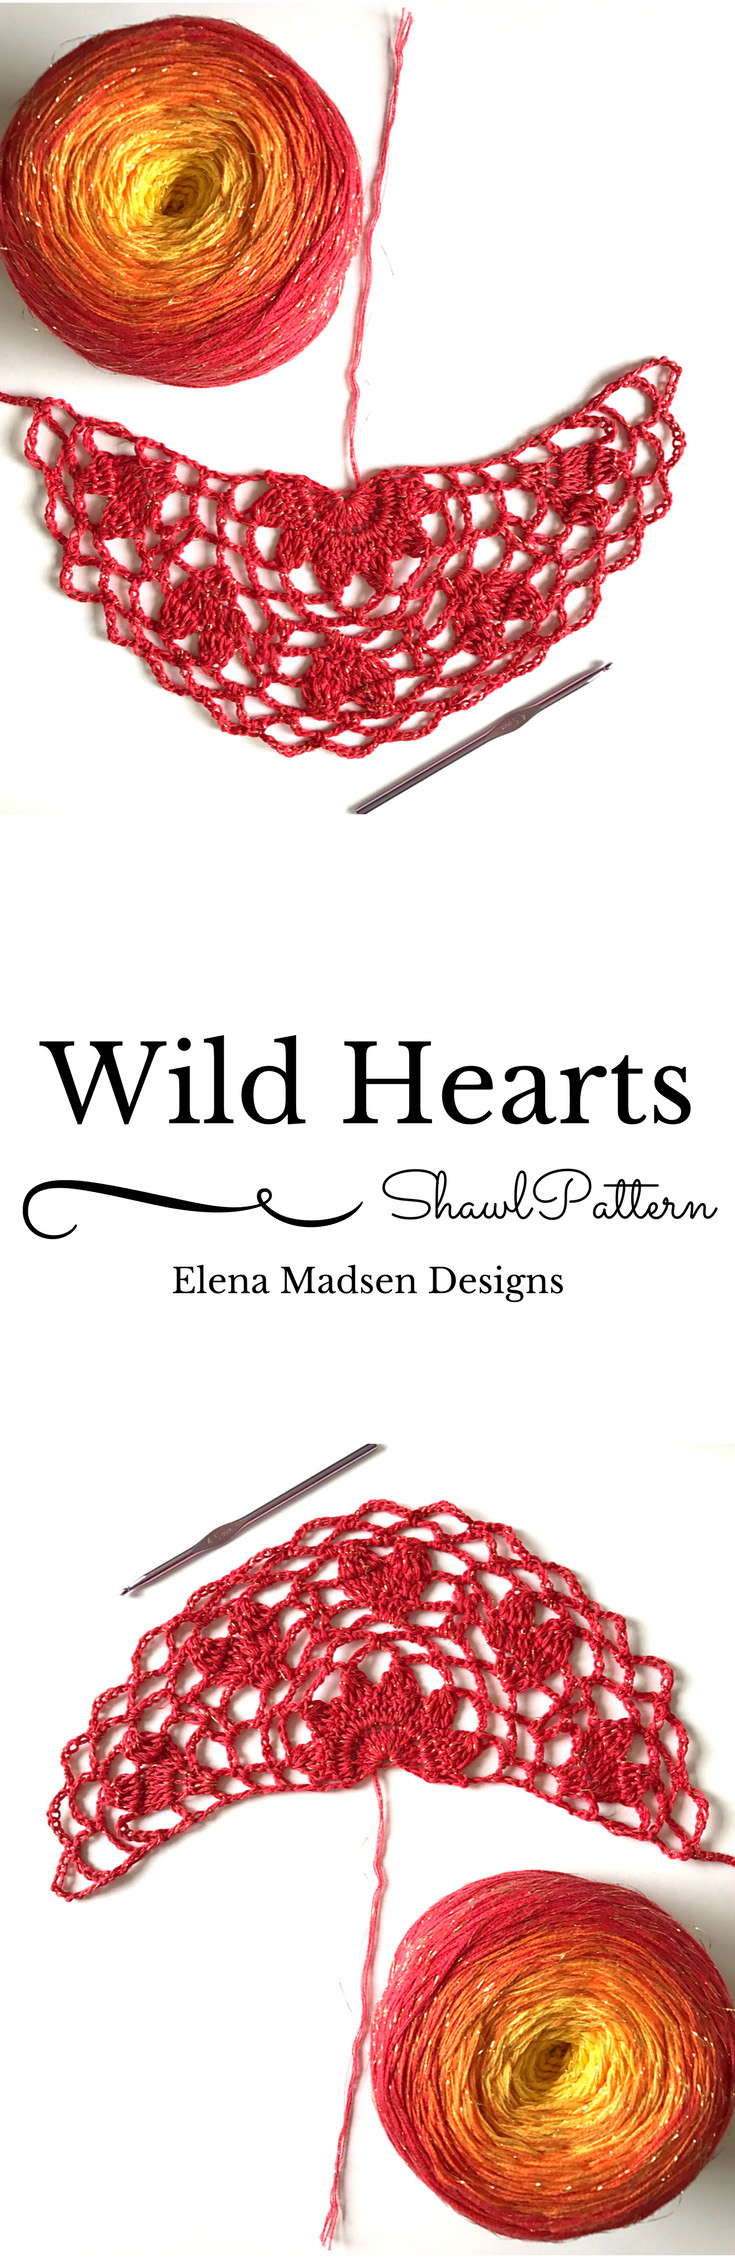 Crochet Wild Hearts shawl in the making! This will look gorgeous in ...